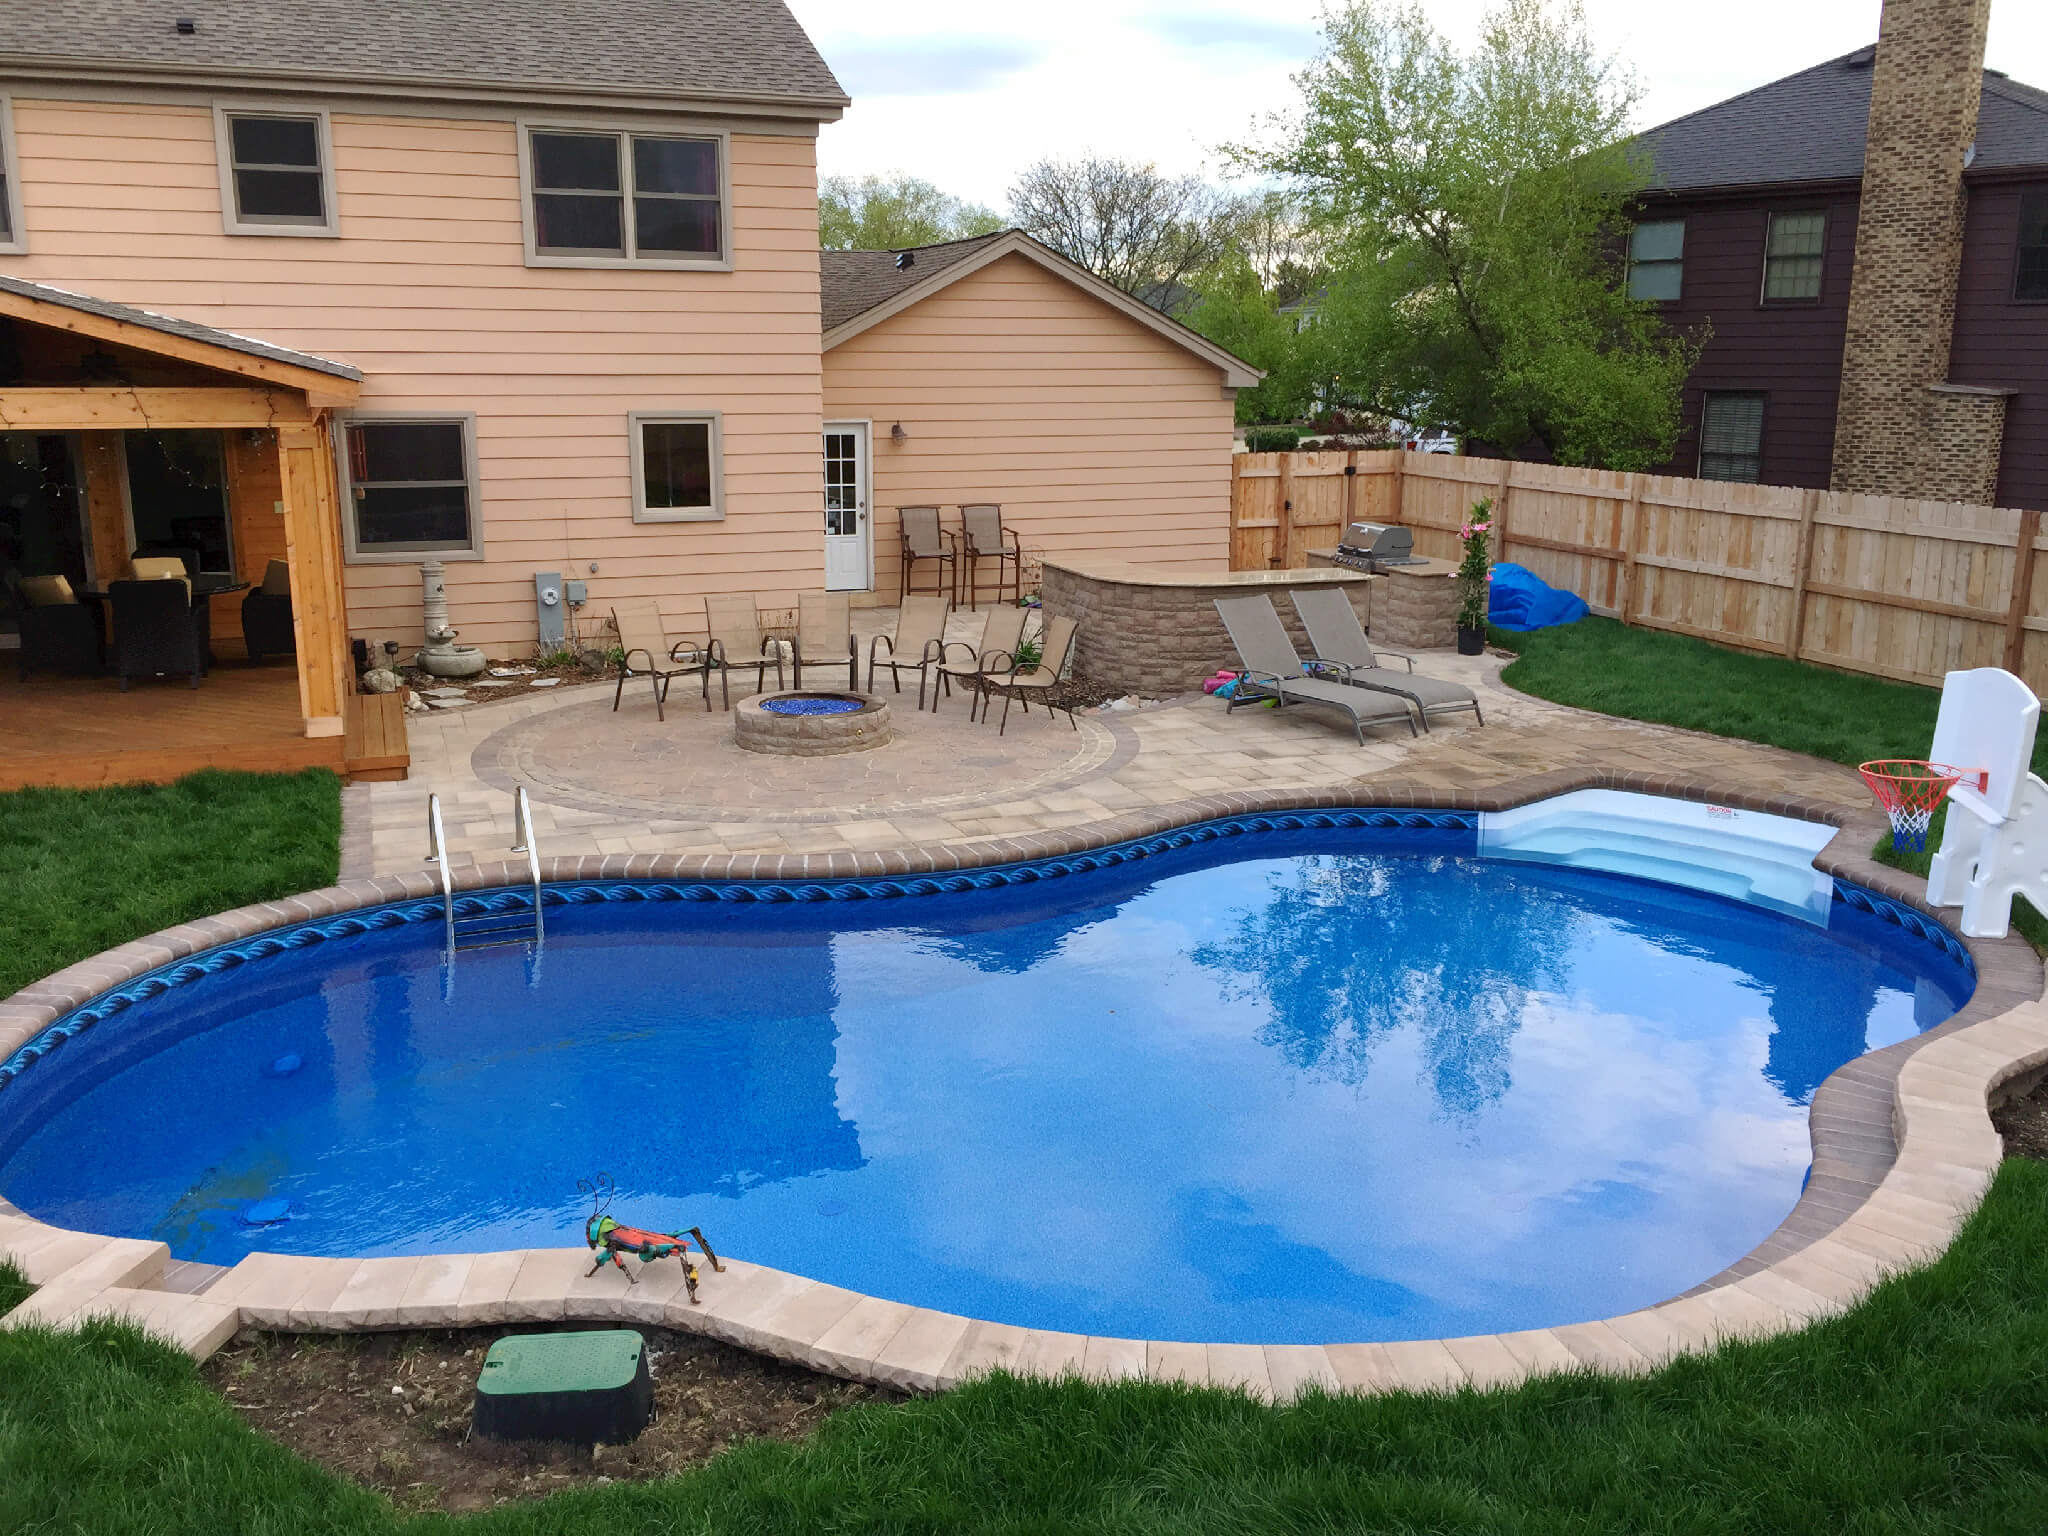 Custom patio pool deck with fire pit and outdoor kitchen